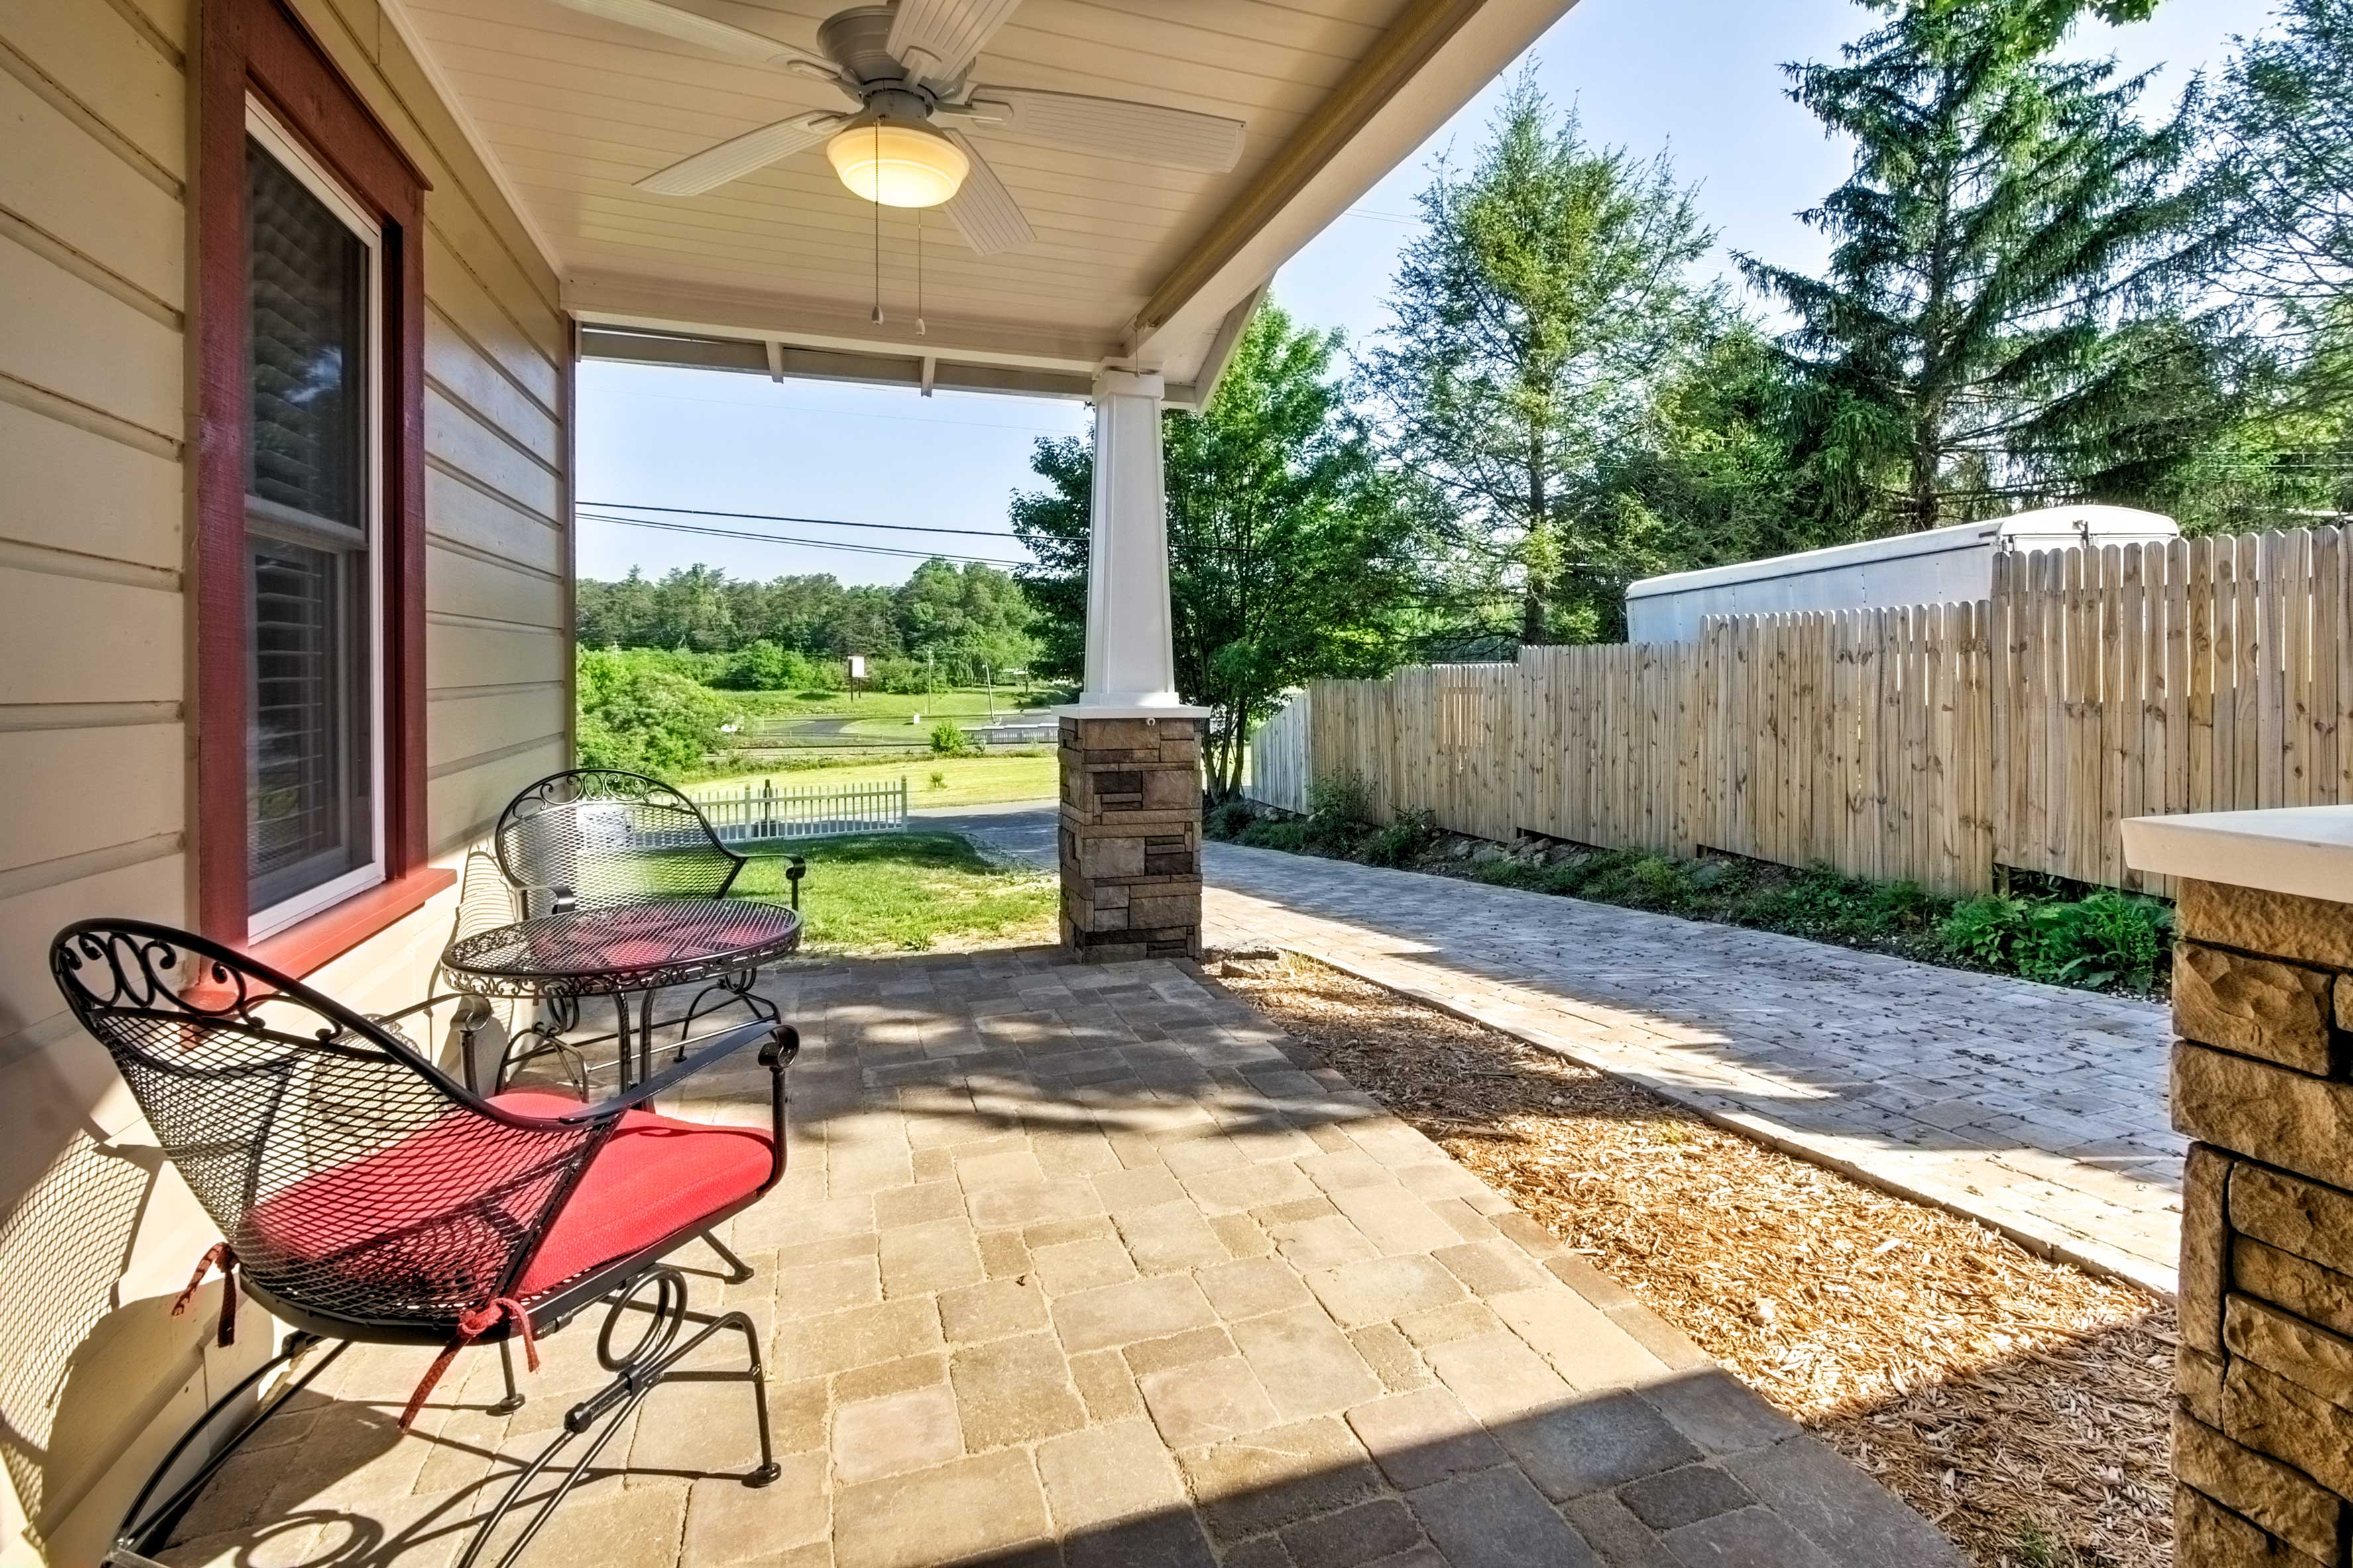 Early risers will look forward to sipping their morning coffee outside on the covered patio.